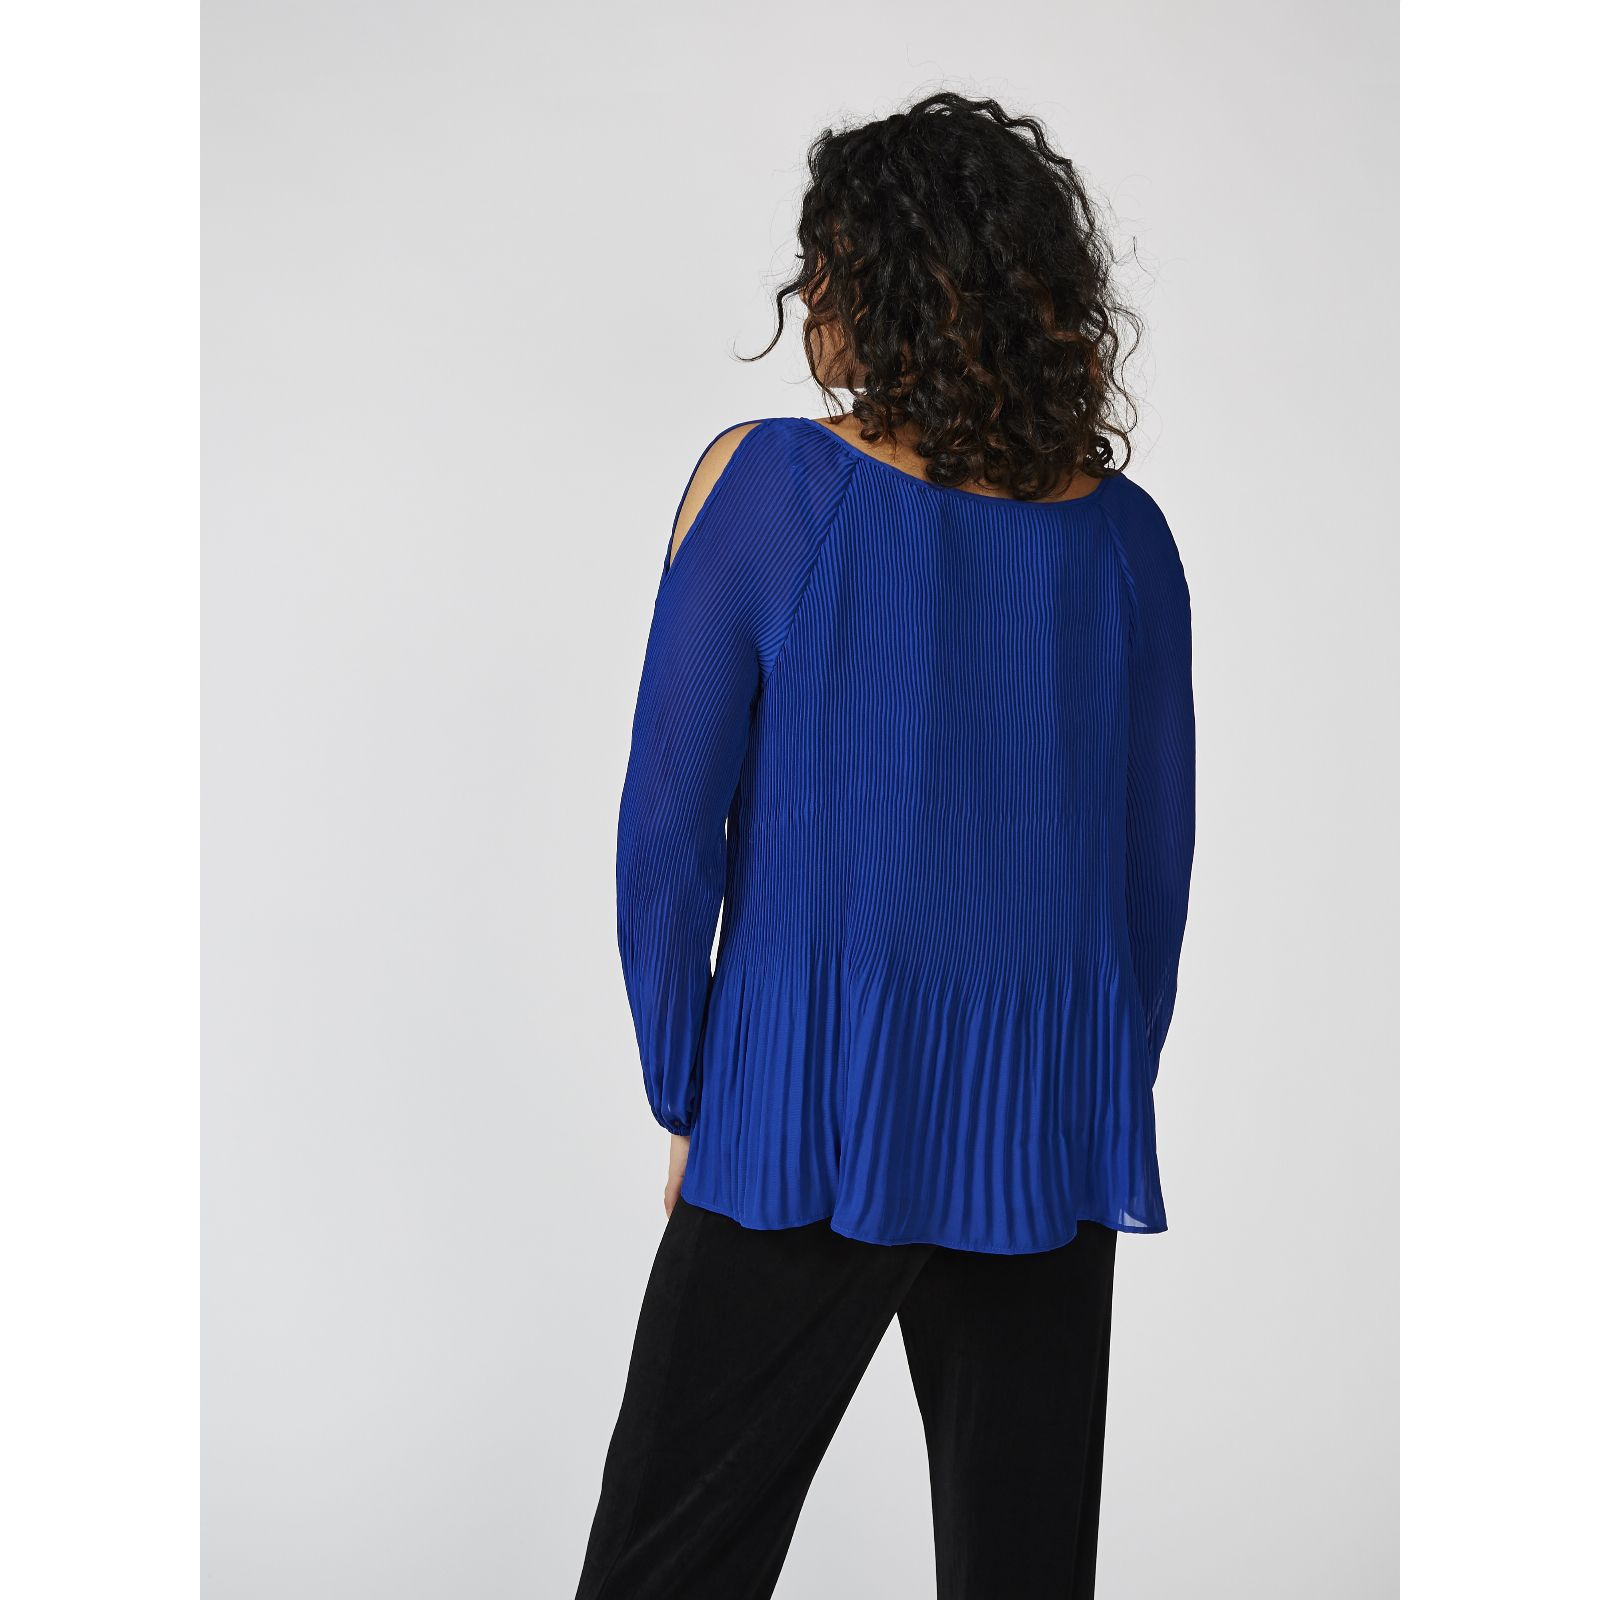 3b84e60b189ac Woven Pleated Cold Shoulder Top by Susan Graver - QVC UK